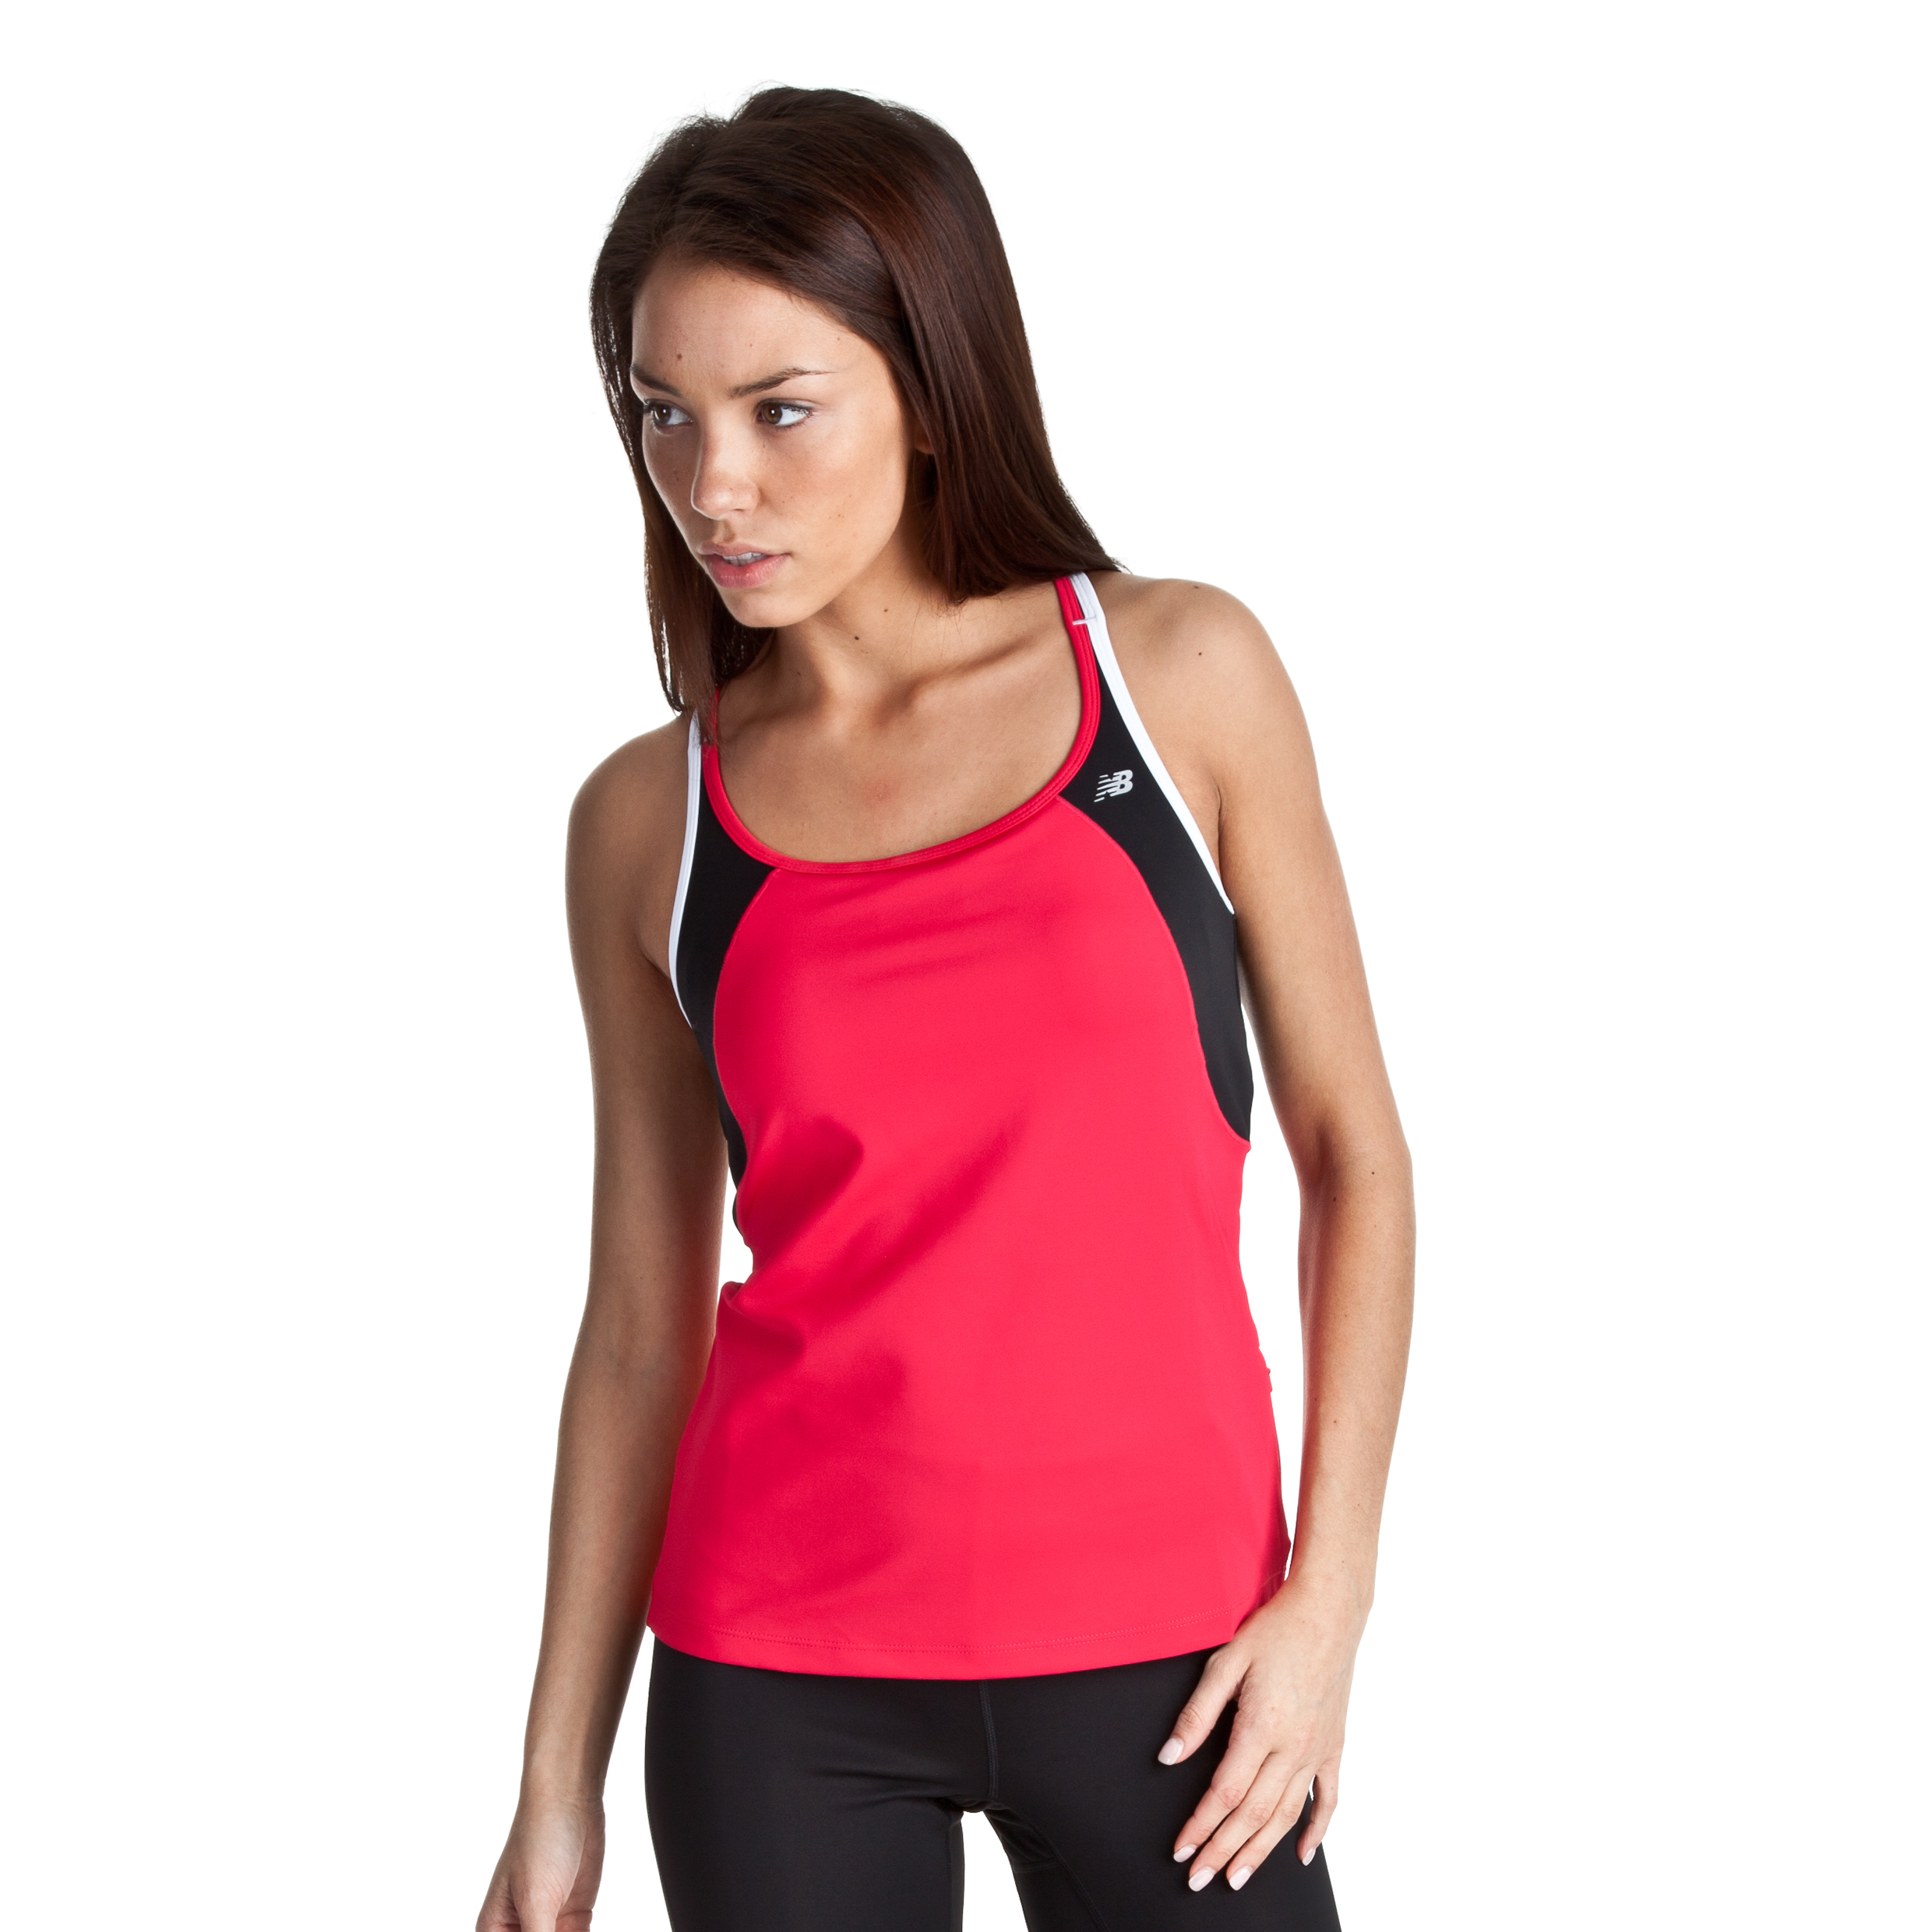 New Balance Tonic Top - Vibrant Pink - Womens